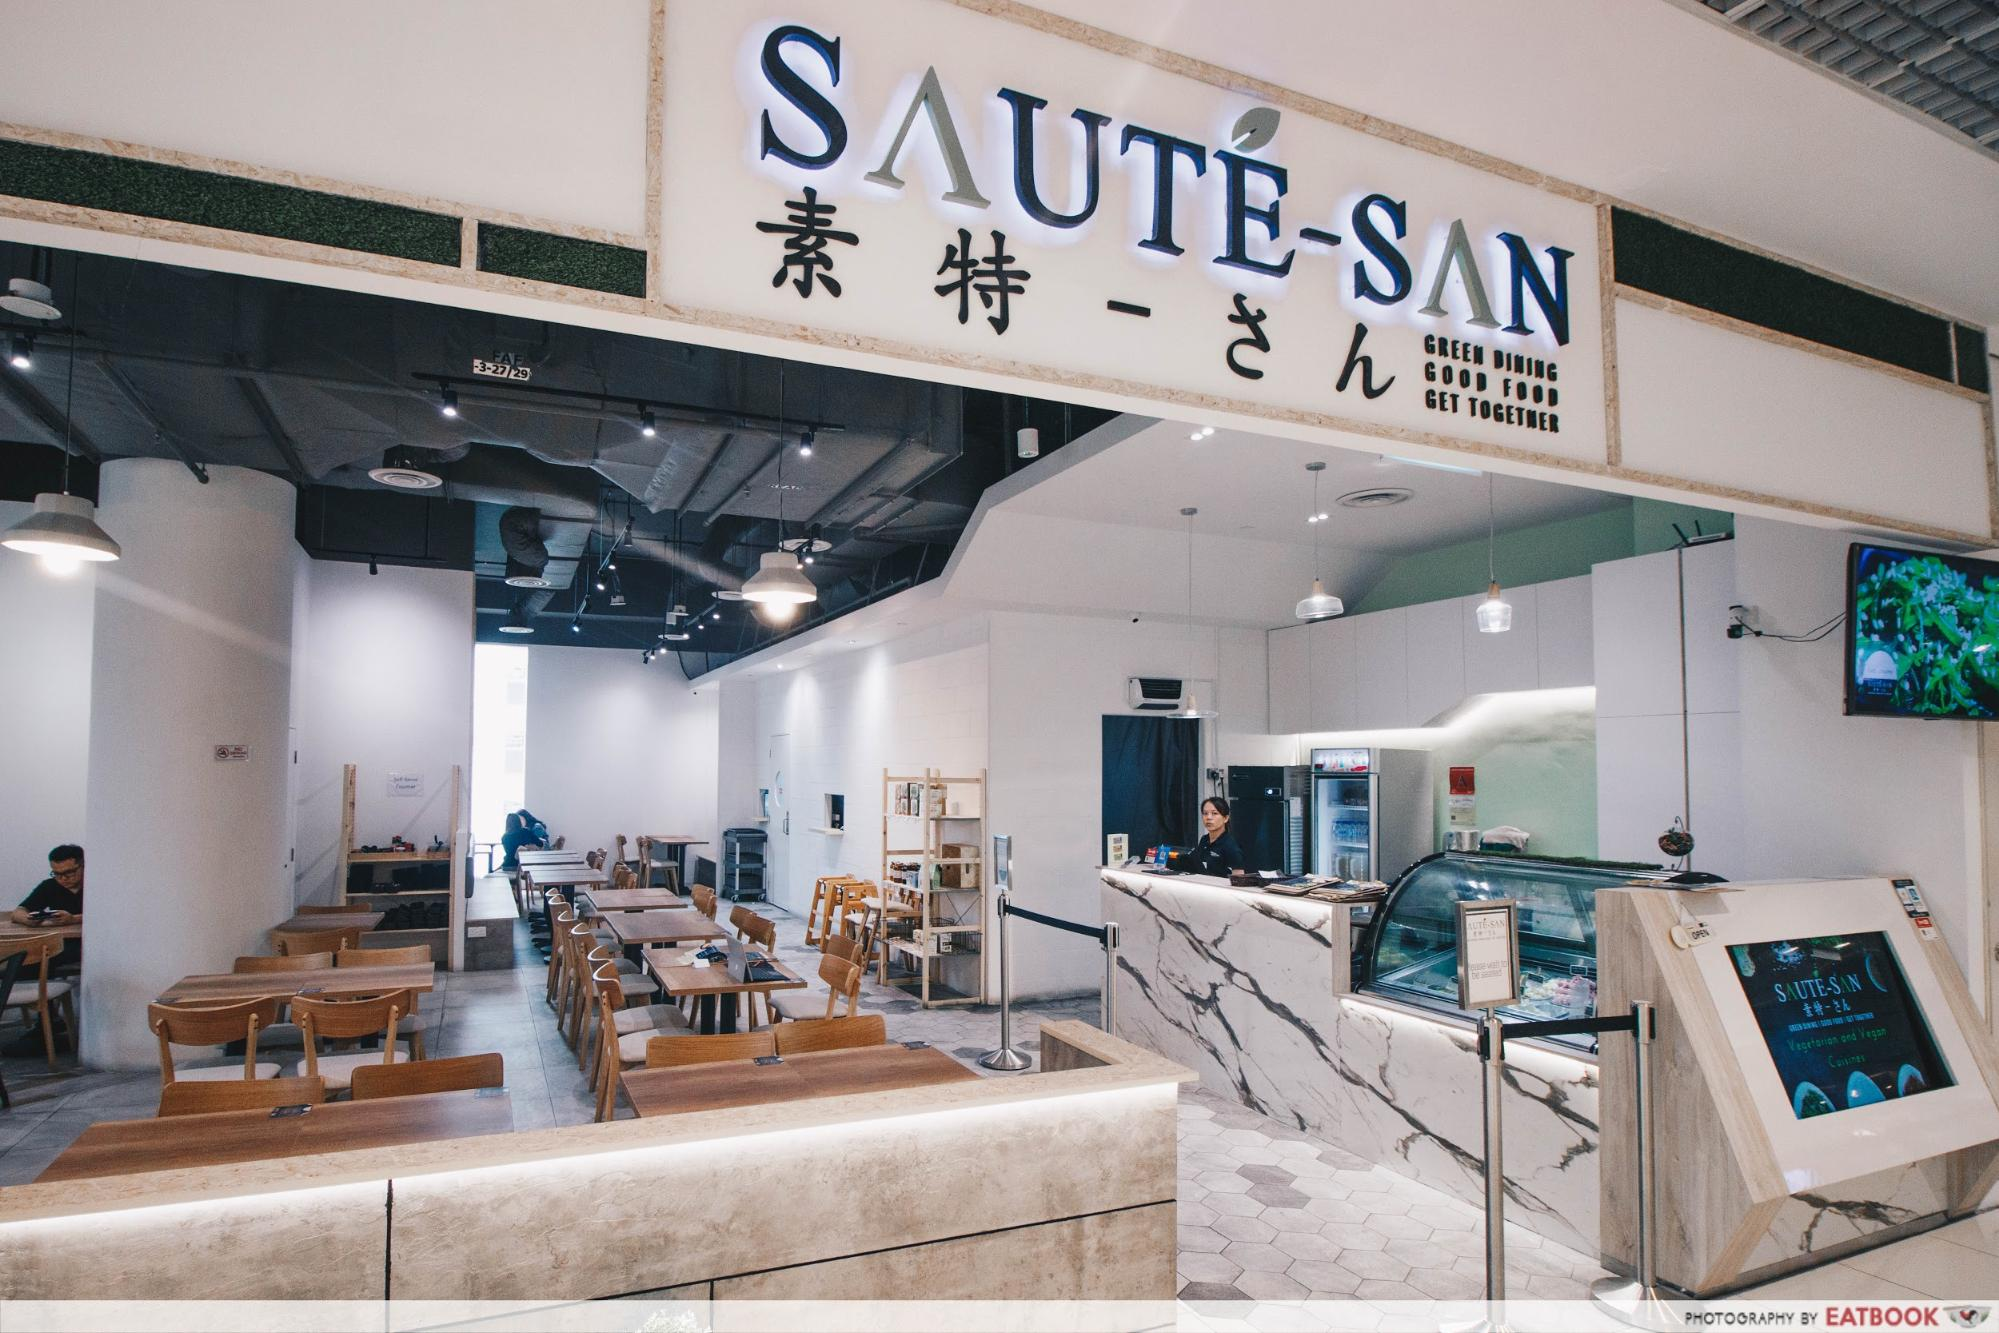 New Restaurant City Square Mall - Saute-San